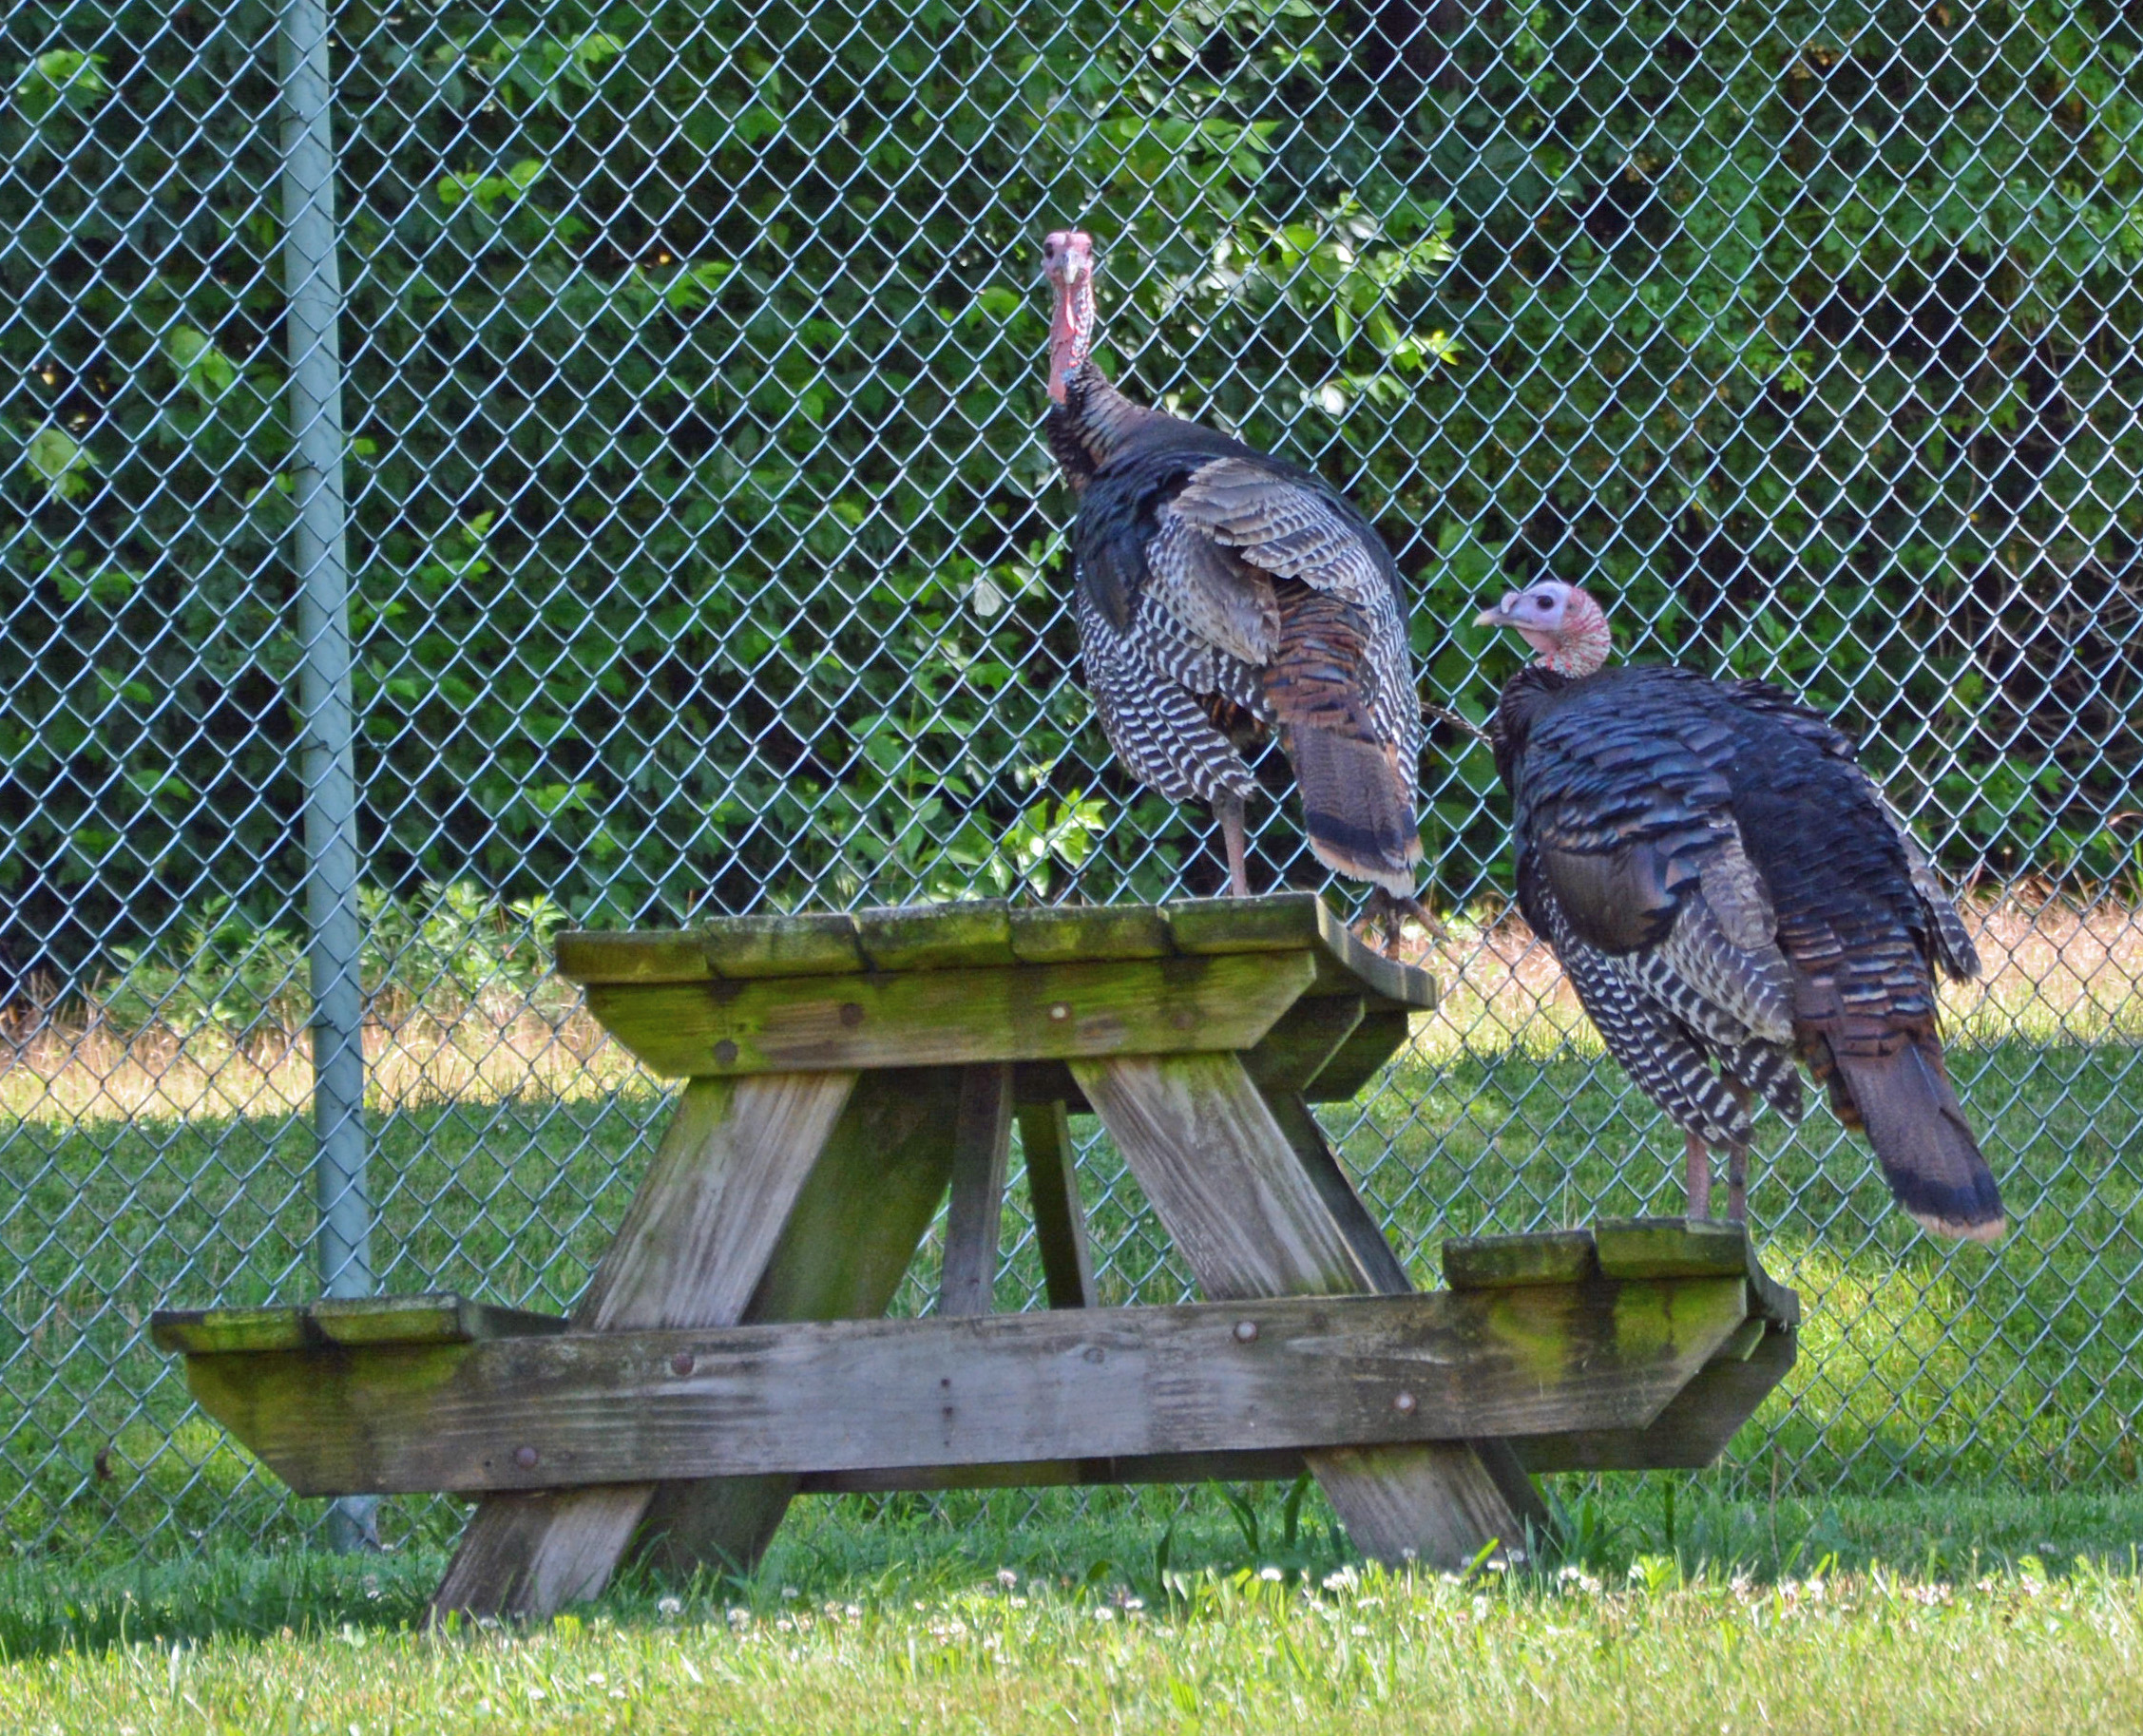 Two Turkeys waiting for our Open House?